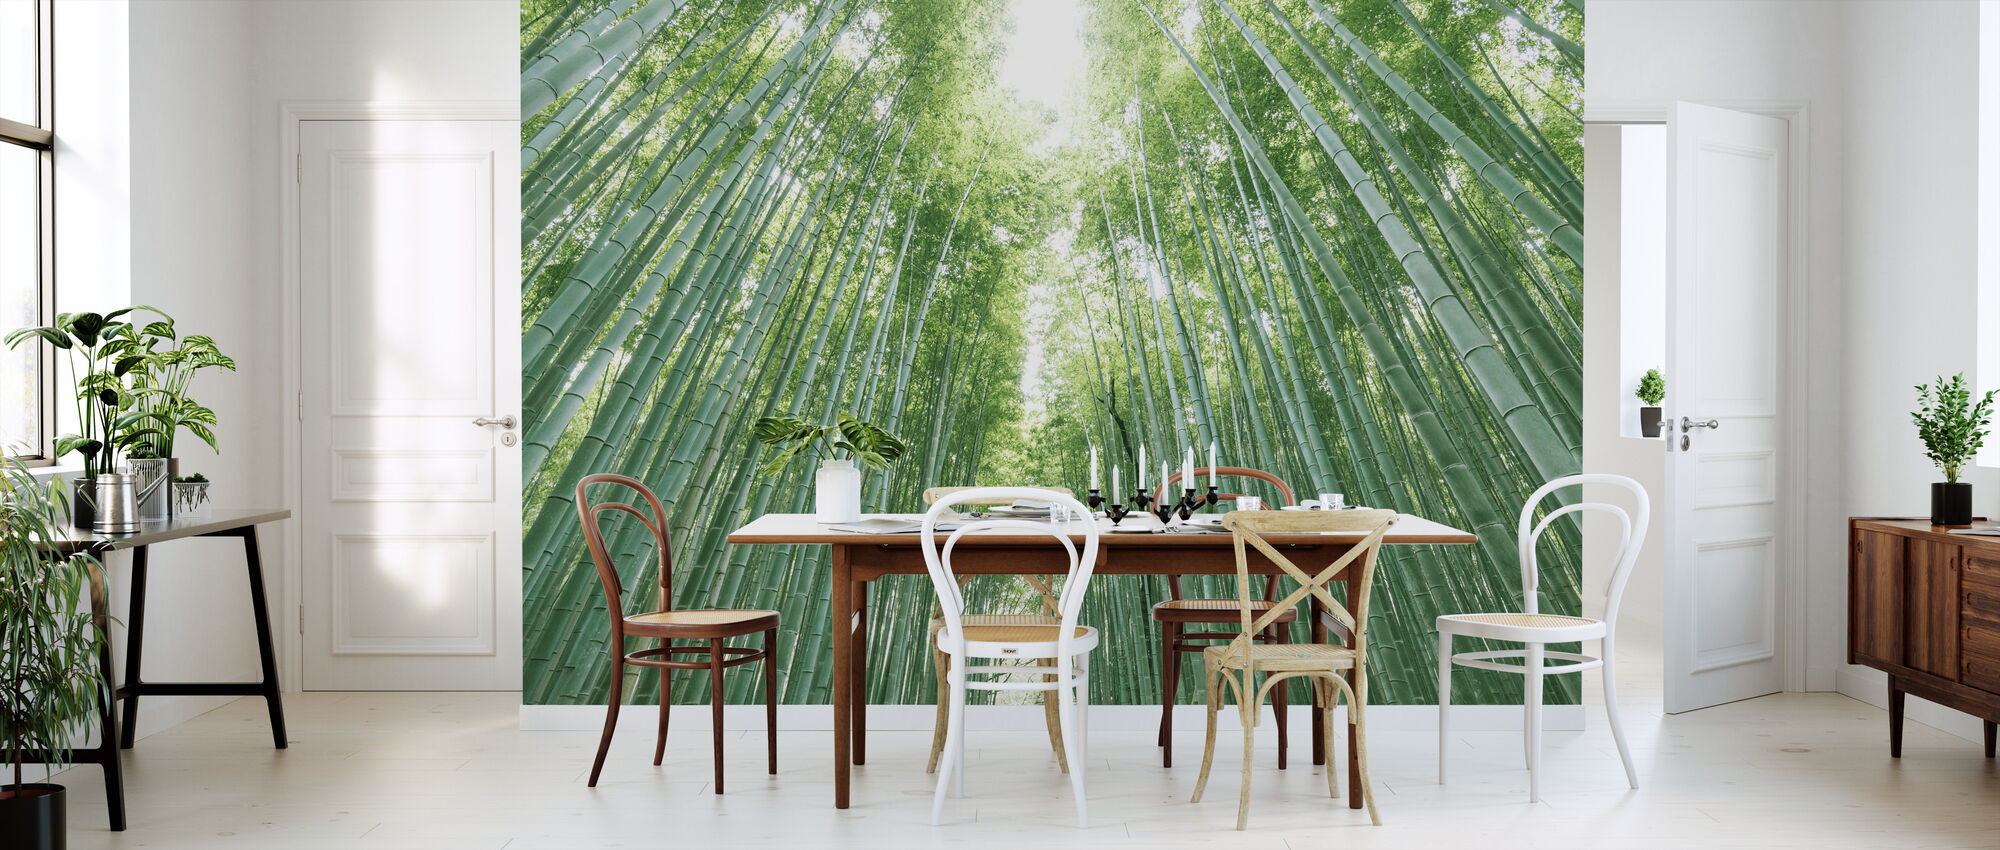 Bamboo Forest - Wallpaper - Kitchen